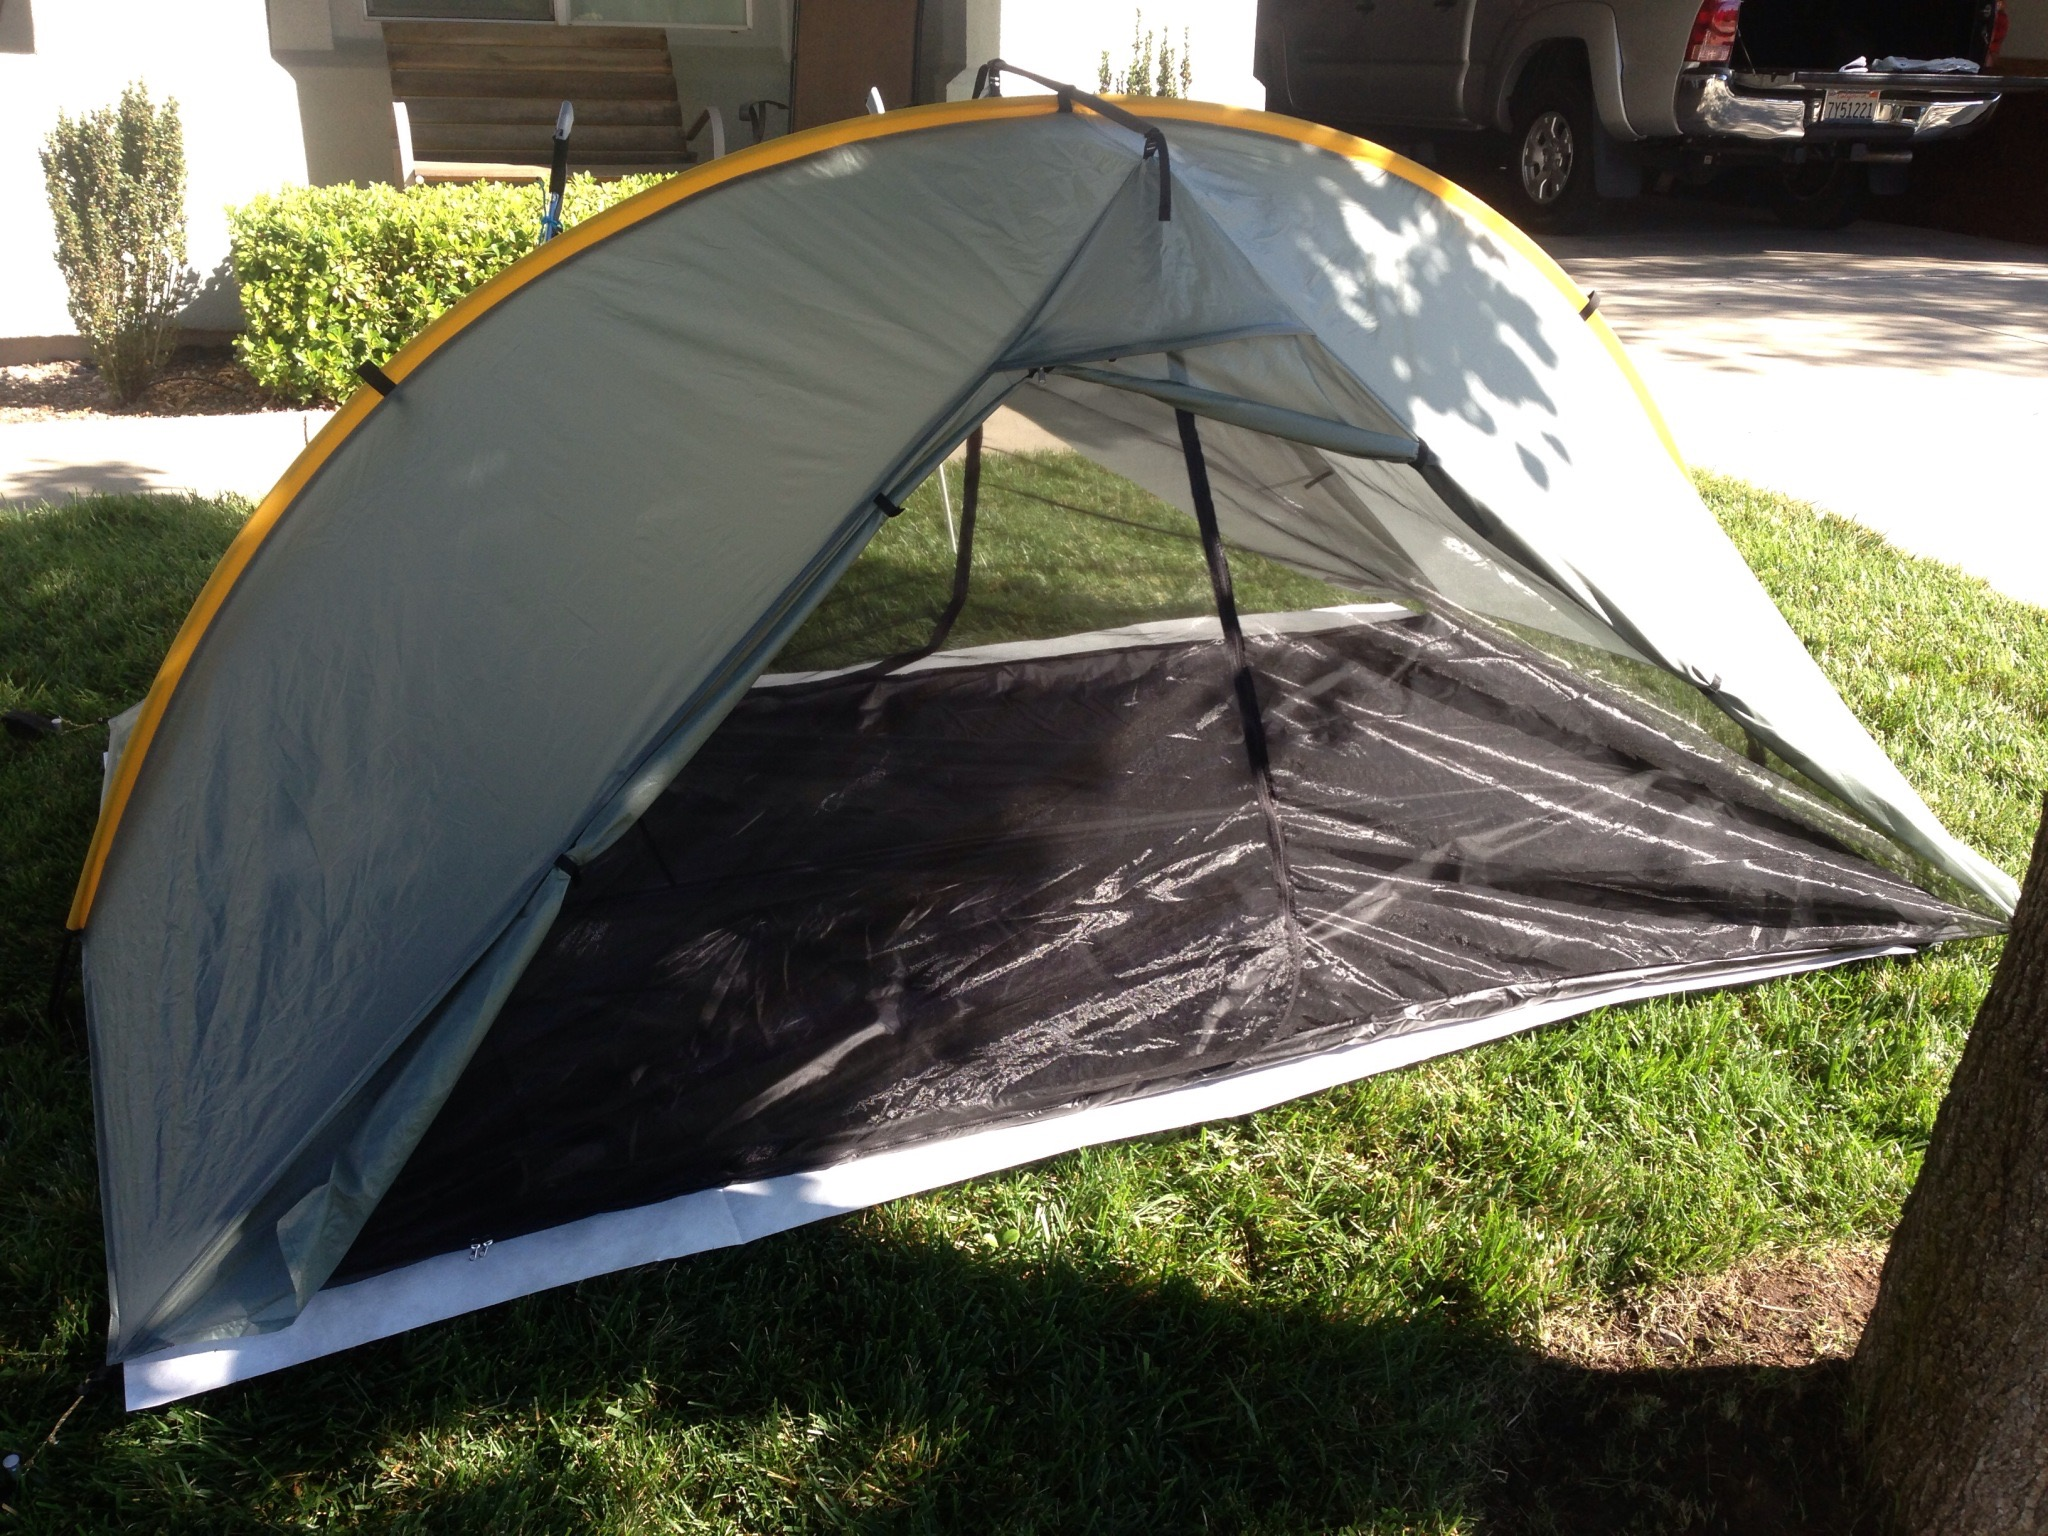 Iu0027m selling my Tarptent Double Rainbow for $280.00 shipped Conus (You pay PayPal fees). It comes with the liner the aluminum pole and nine stakes (I ... & Fast: Tarptent Double Rainbow - Backpacking Light